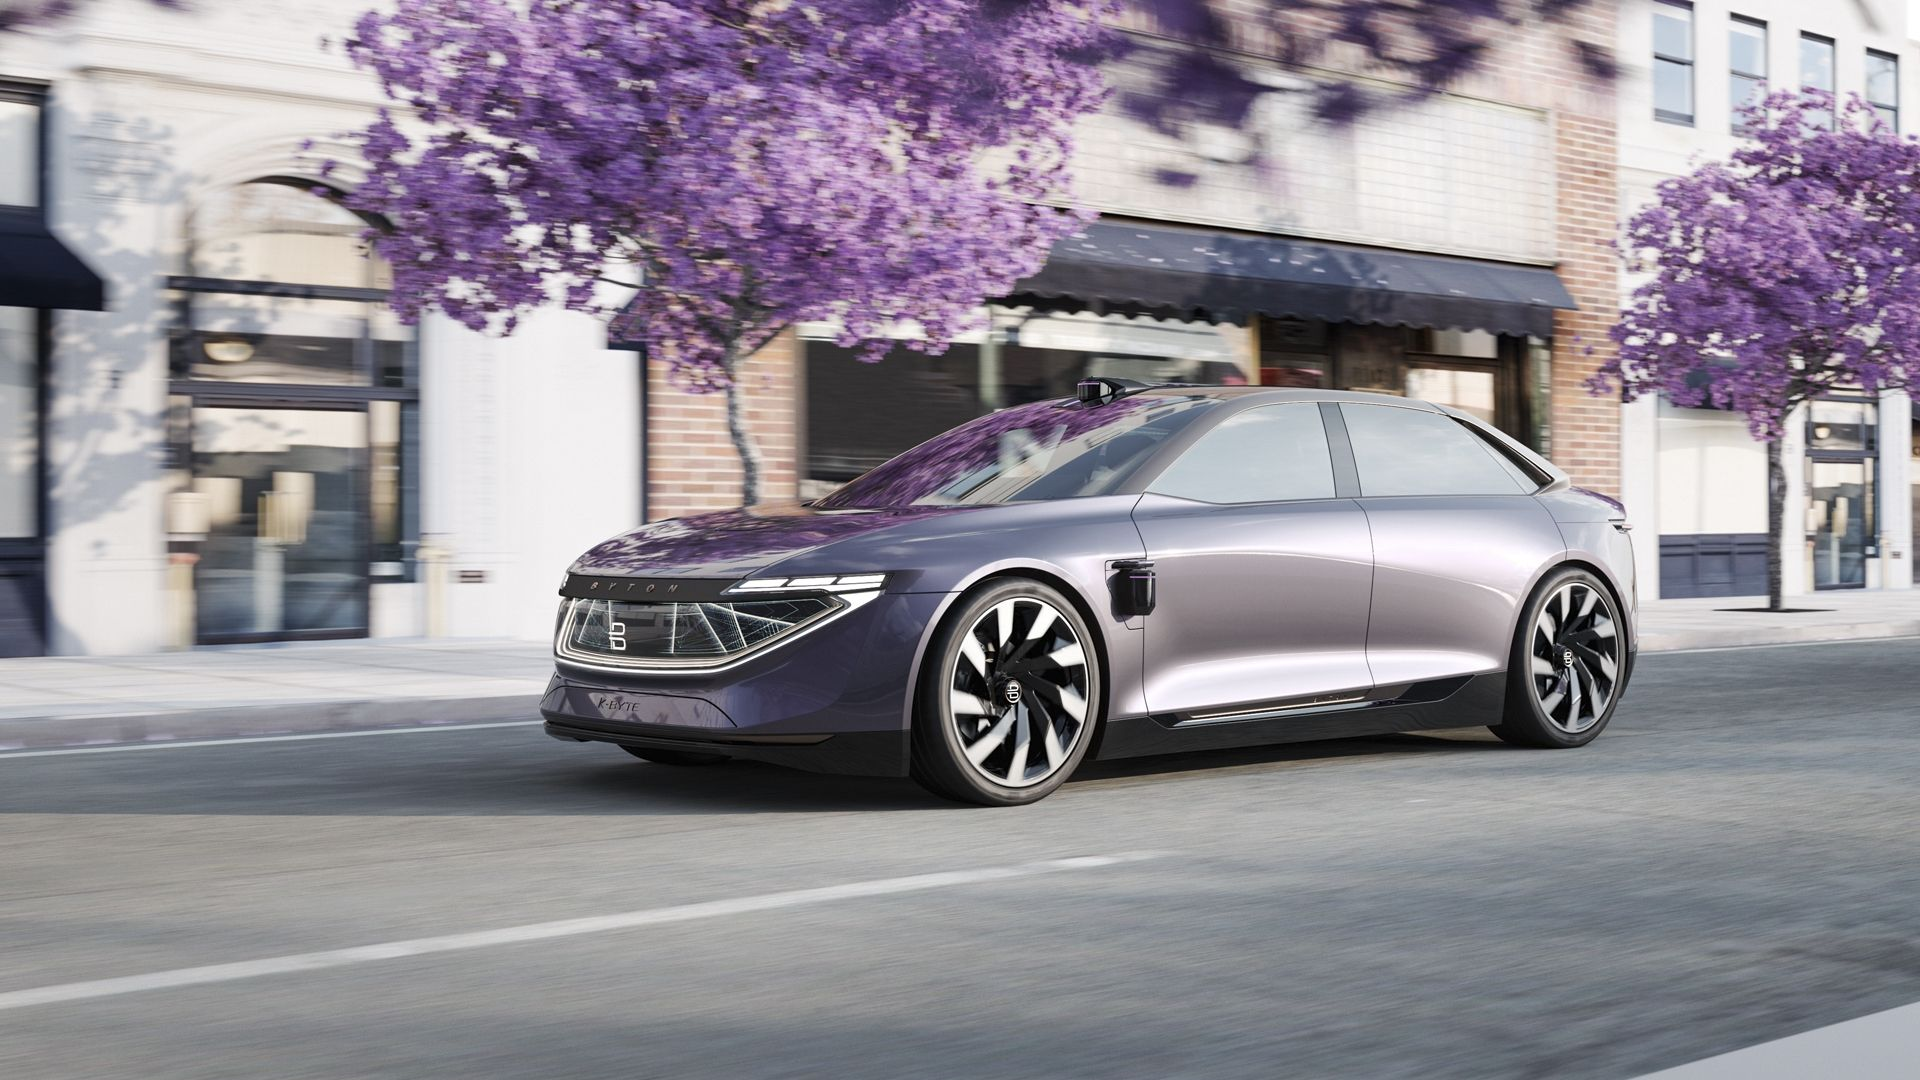 2018 Byton K Byte Concept Top Speed Electric Cars Tesla Car Suv Models